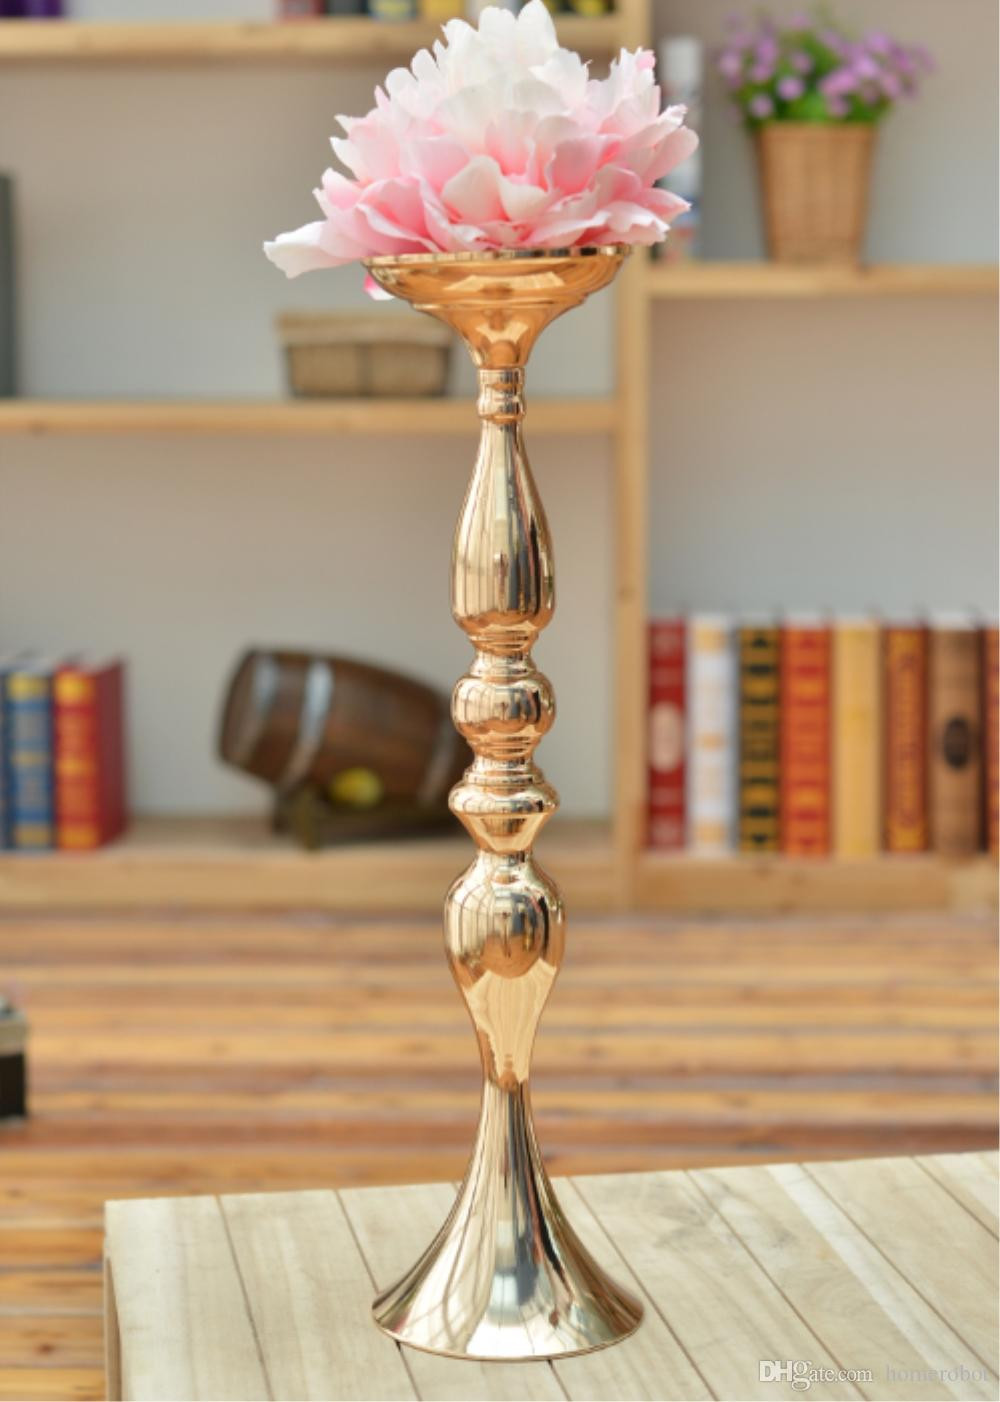 12 attractive Gold Striped Vase 2021 free download gold striped vase of gold candle holders 55cm tall metal candlestick flower vase table with our factory showcase